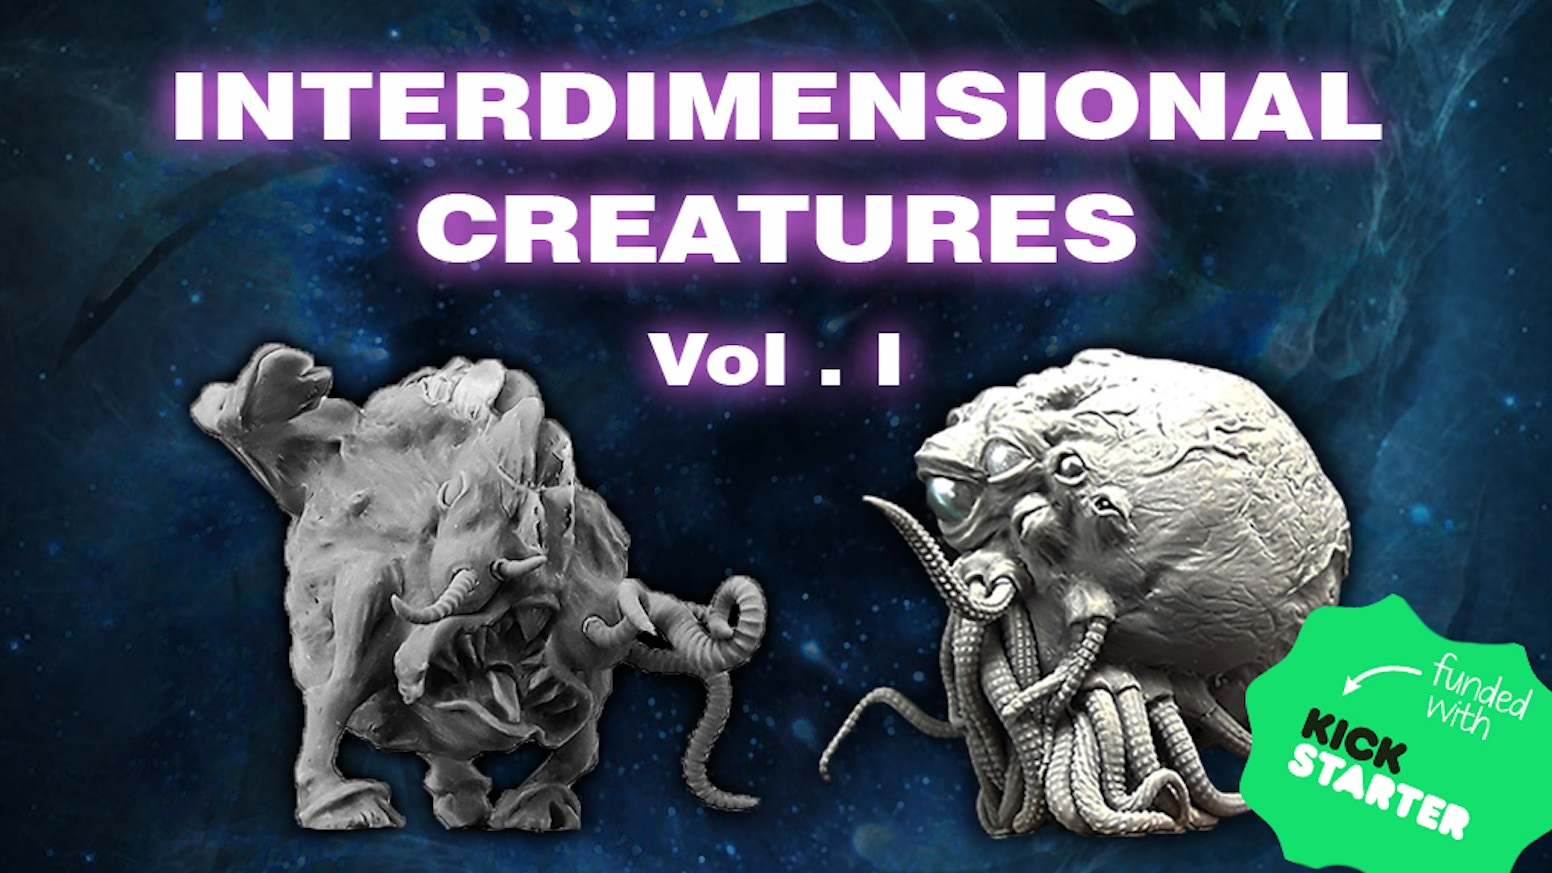 I'm creating the first wave a monster visions from the other dimensions in resin miniatures for collectors.